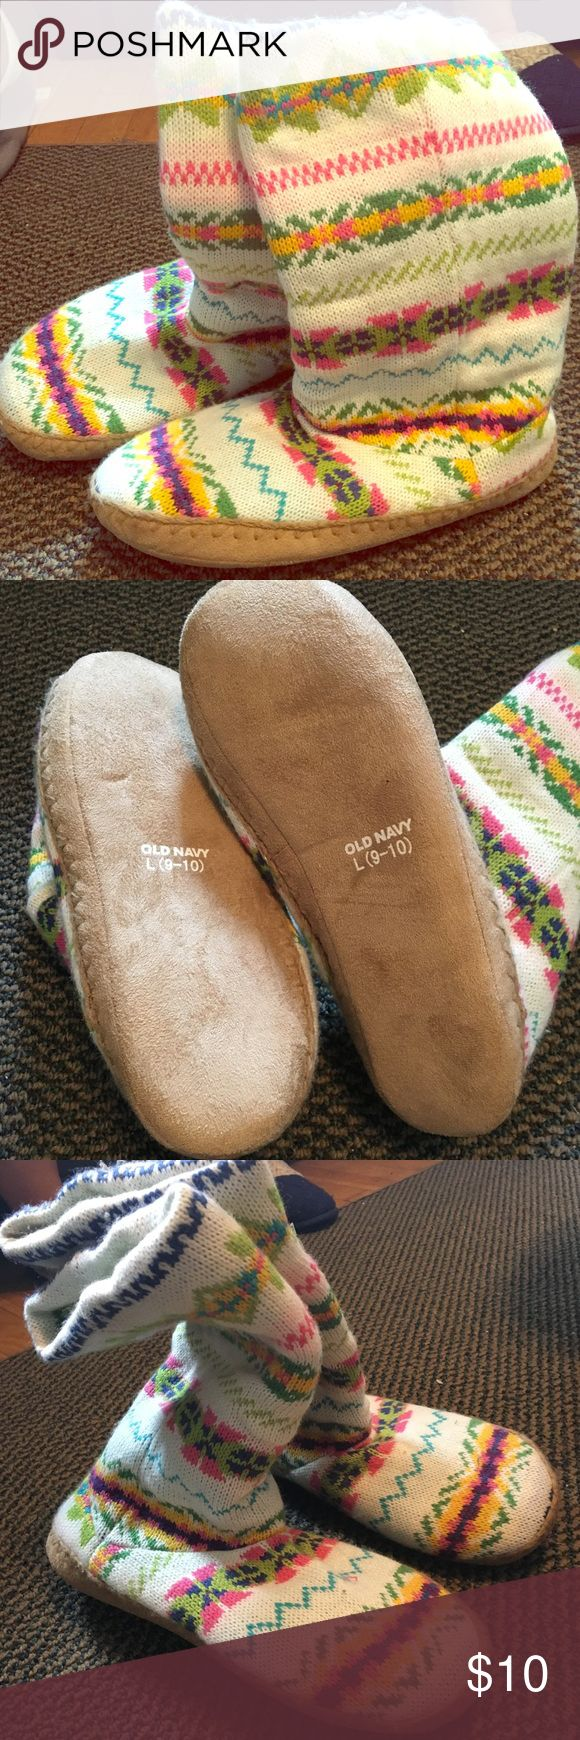 Slipper Boats Perfect for a cozy night in. Never Worn. Fun Bright Design! Old Navy Shoes Slippers